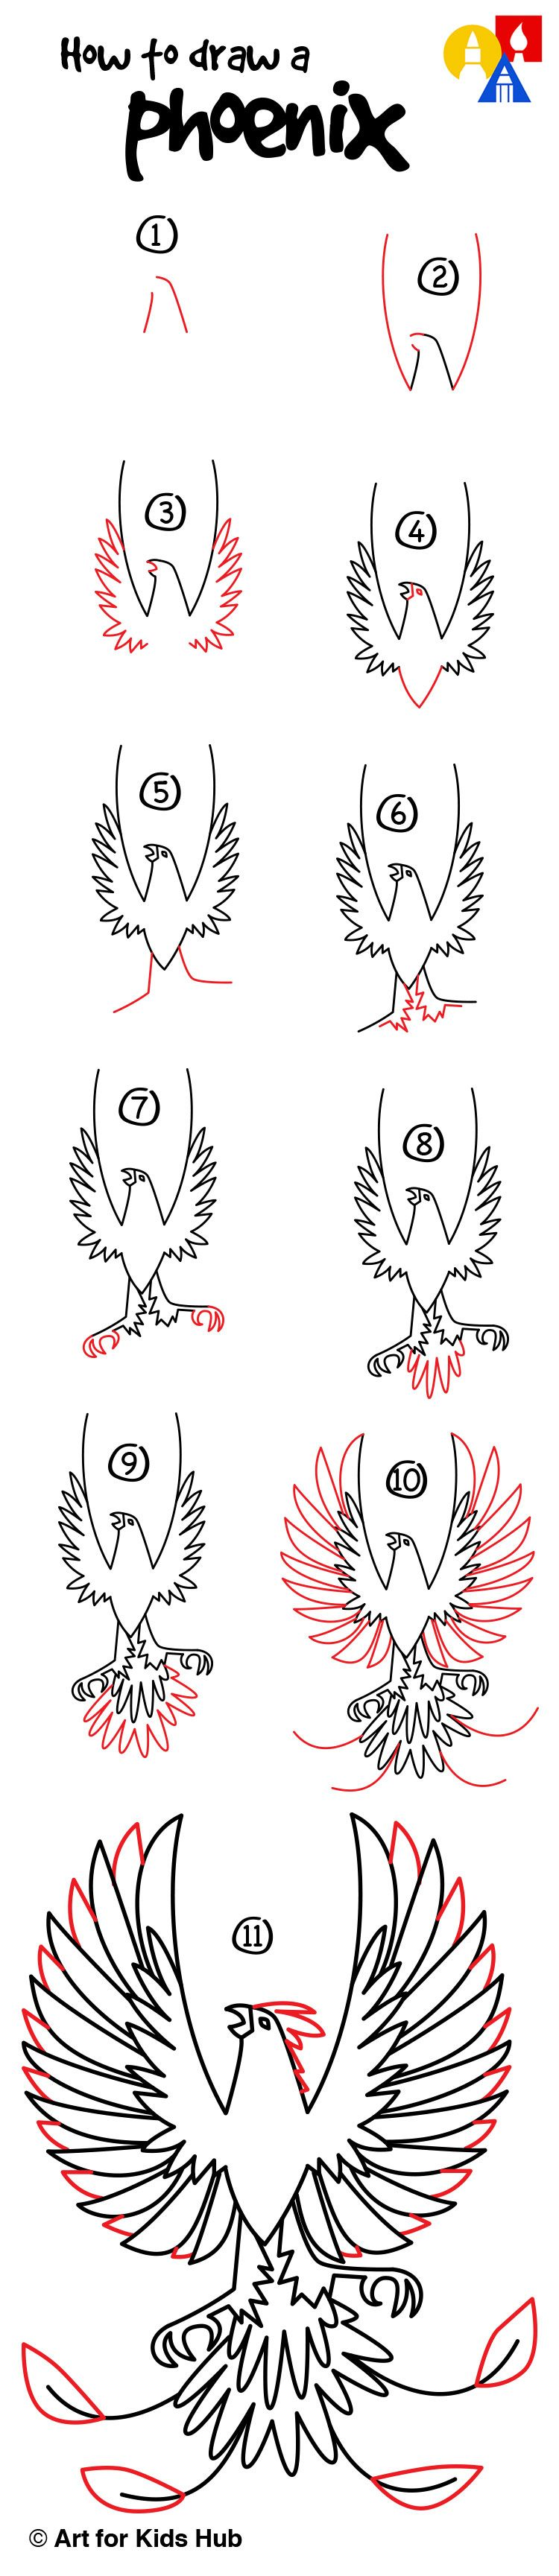 how to draw a phoenix art for kids hub afkh step by. Black Bedroom Furniture Sets. Home Design Ideas